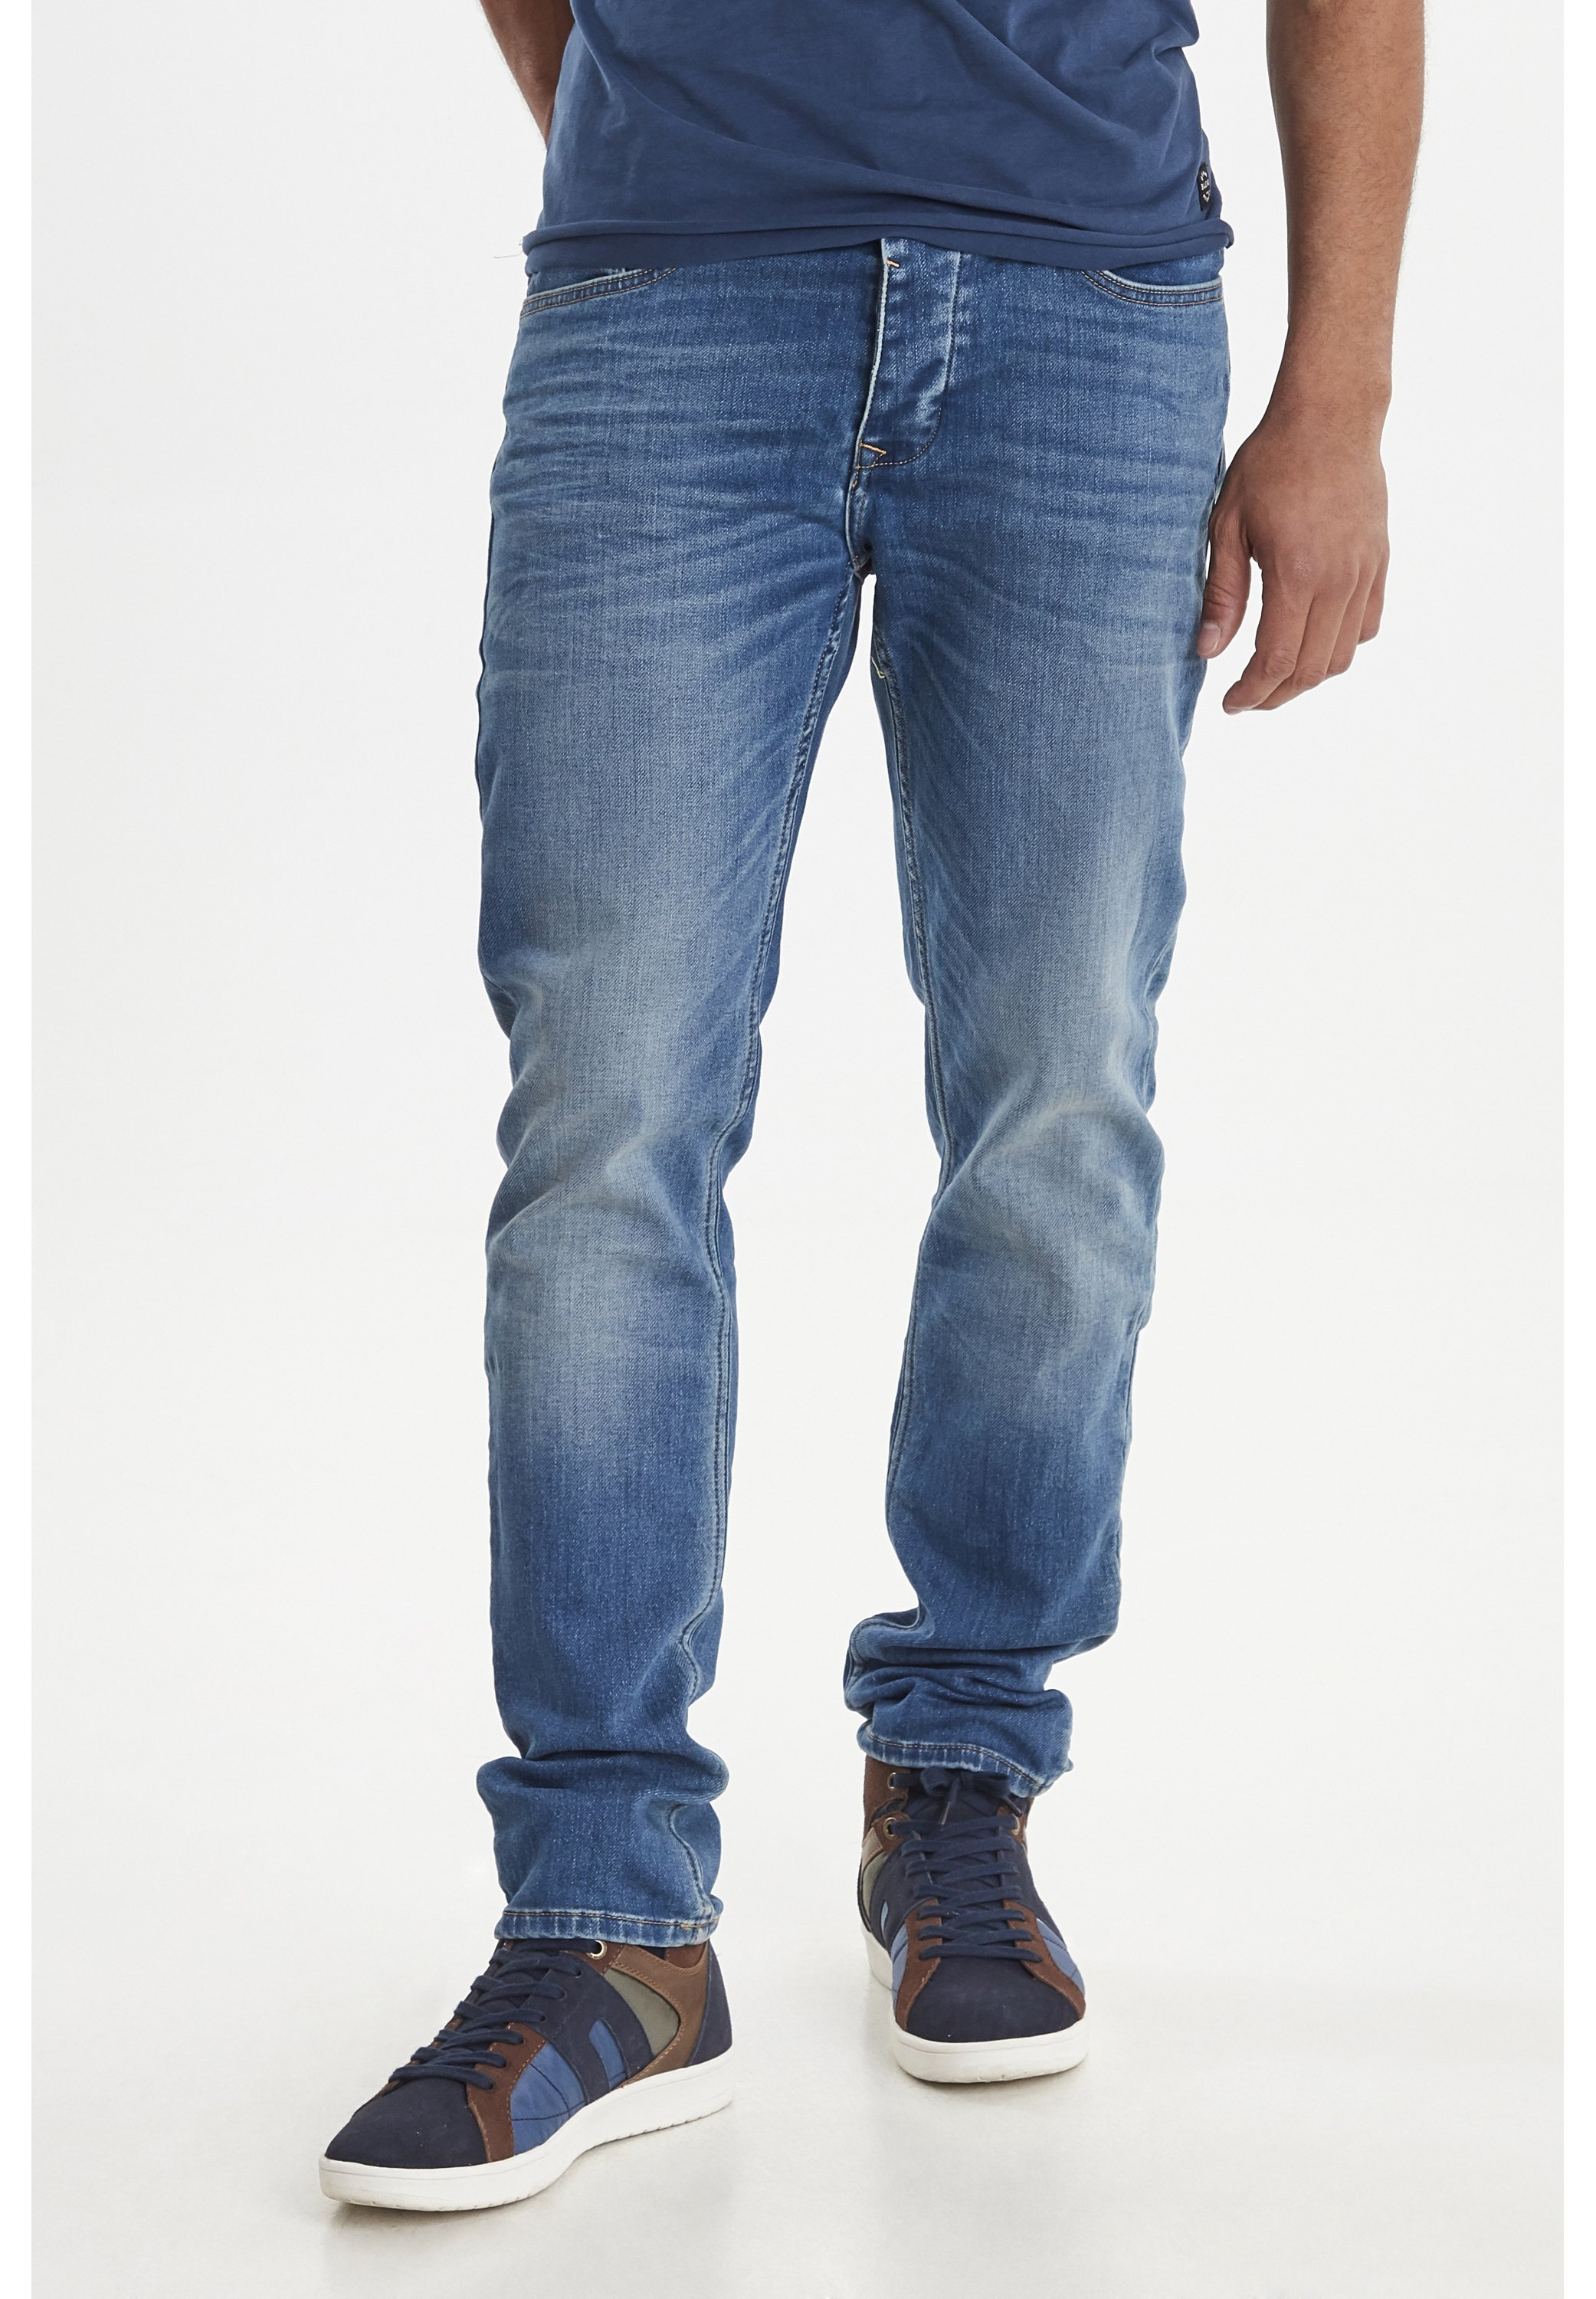 Uomo JEANS JOGG - NOOS TWISTER FIT - Jeans slim fit